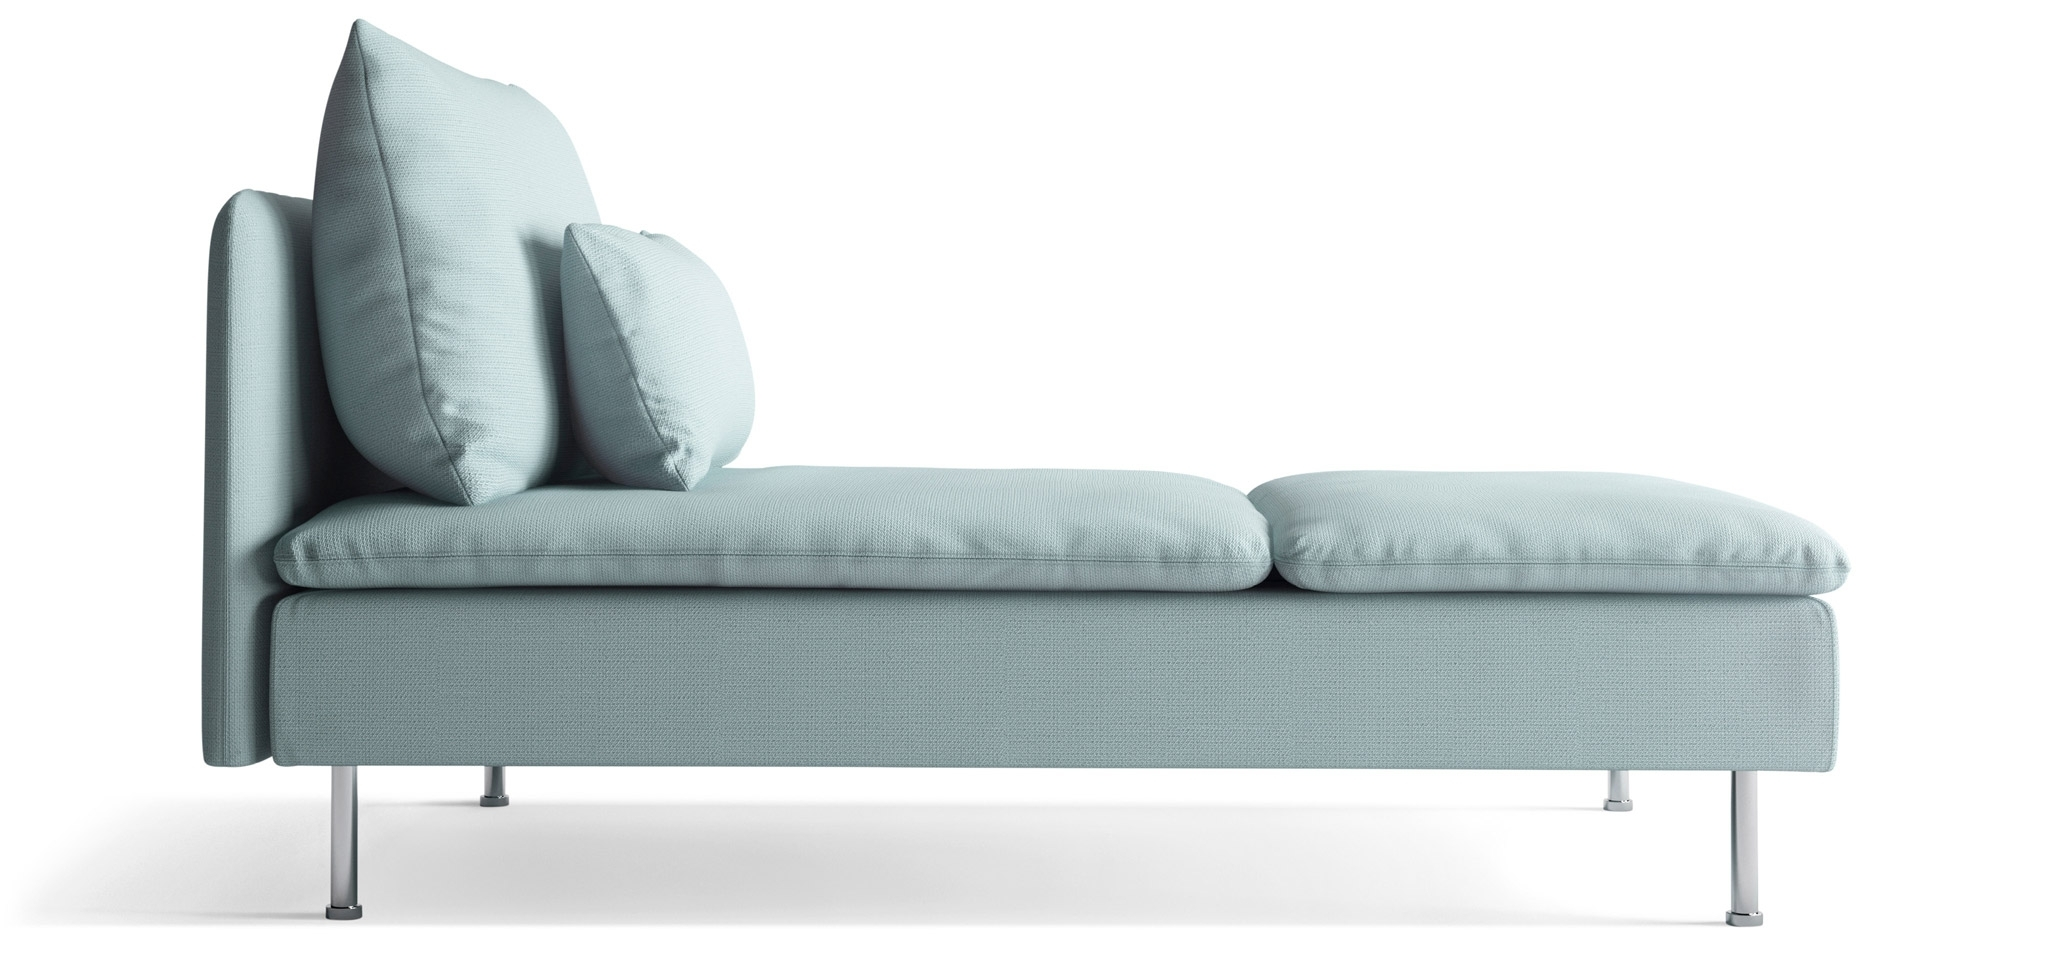 Ikea Ireland – Dublin Pertaining To Ikea Chaise Lounges (View 8 of 15)